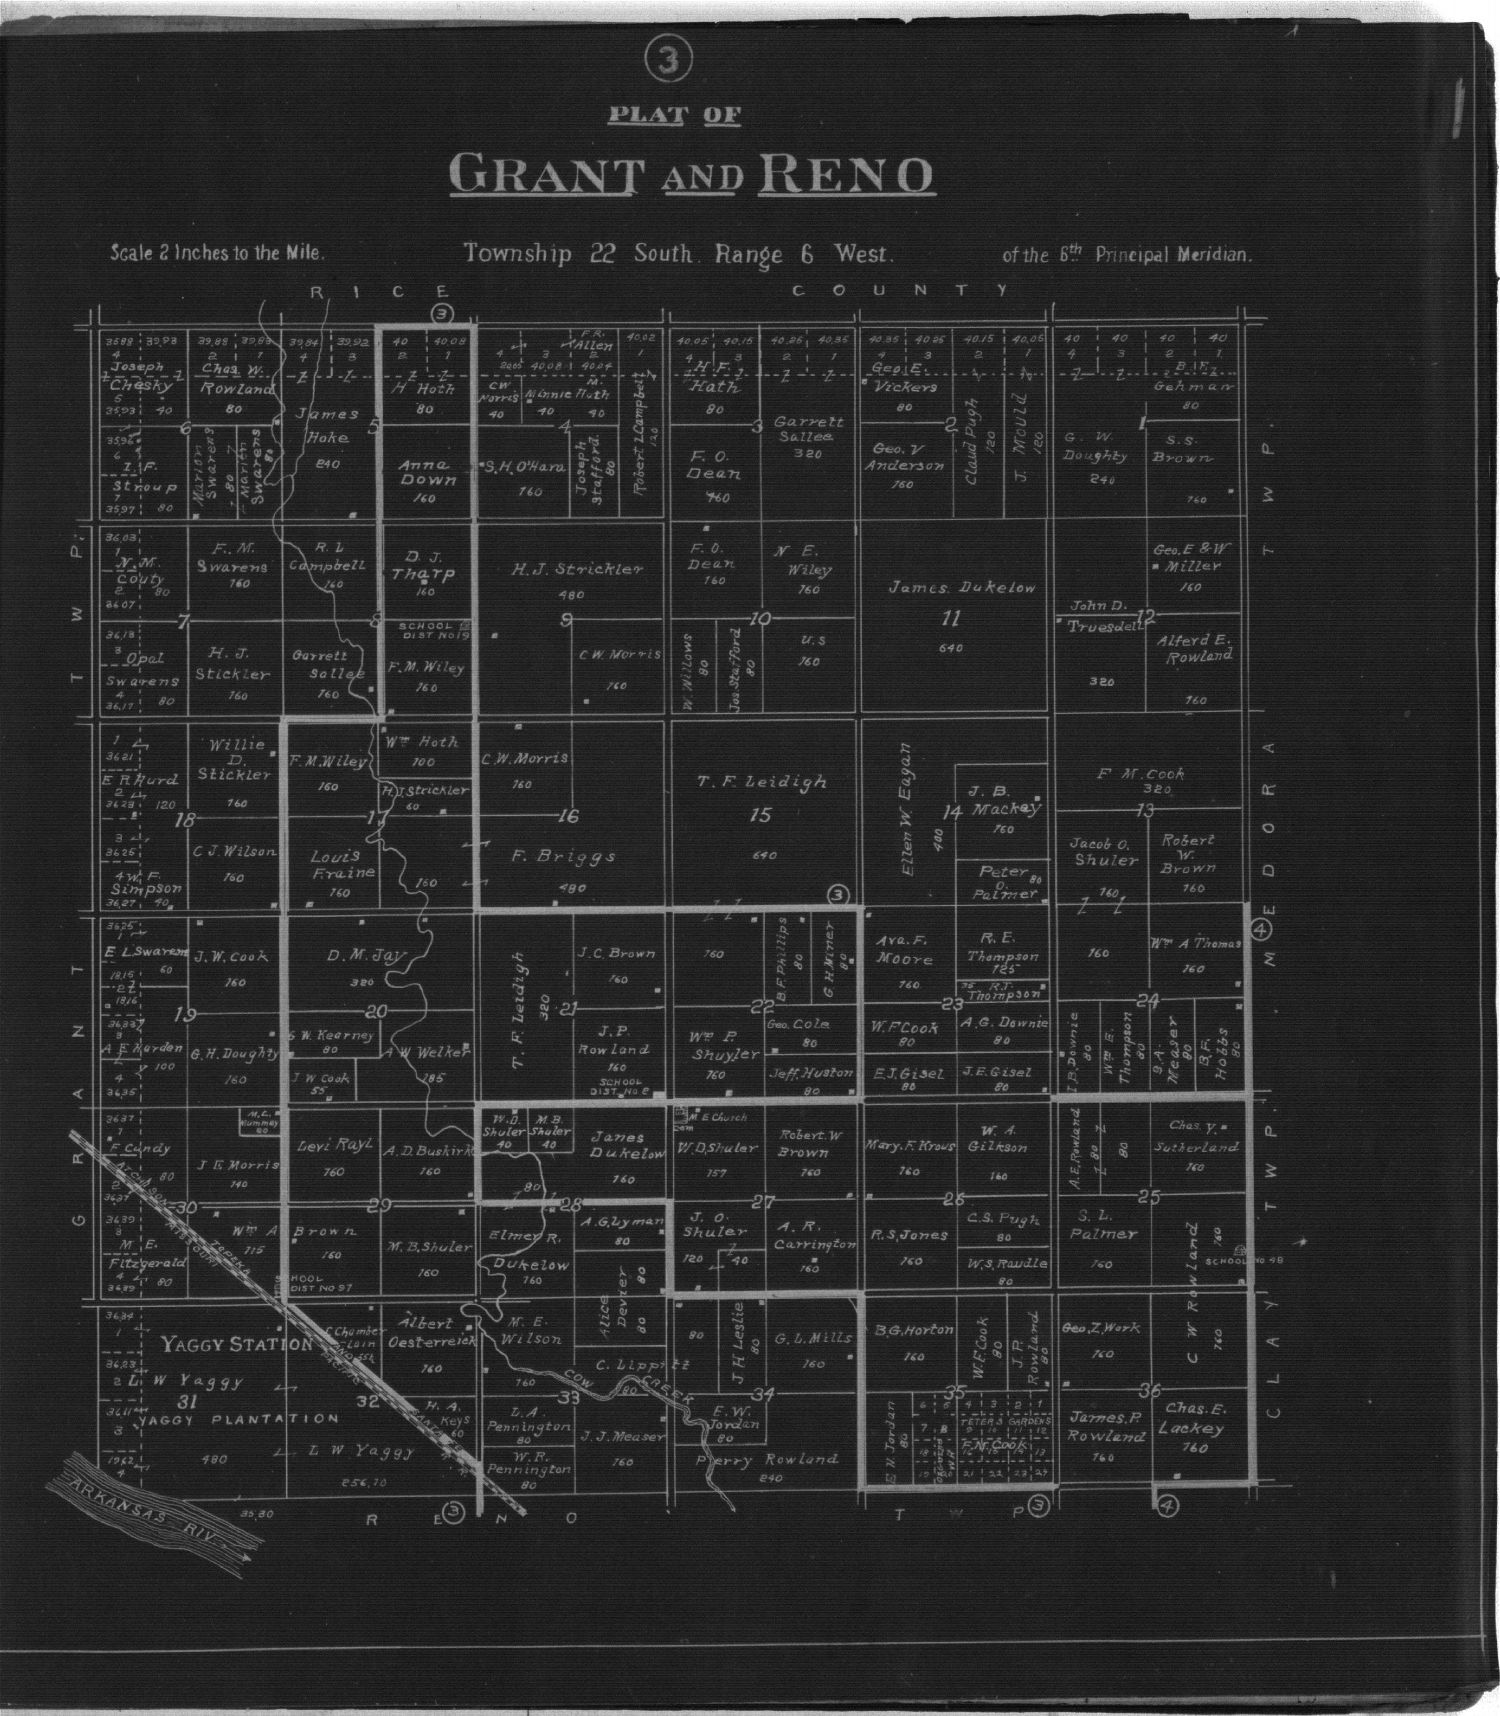 Plat book of Reno County, Kansas - 3